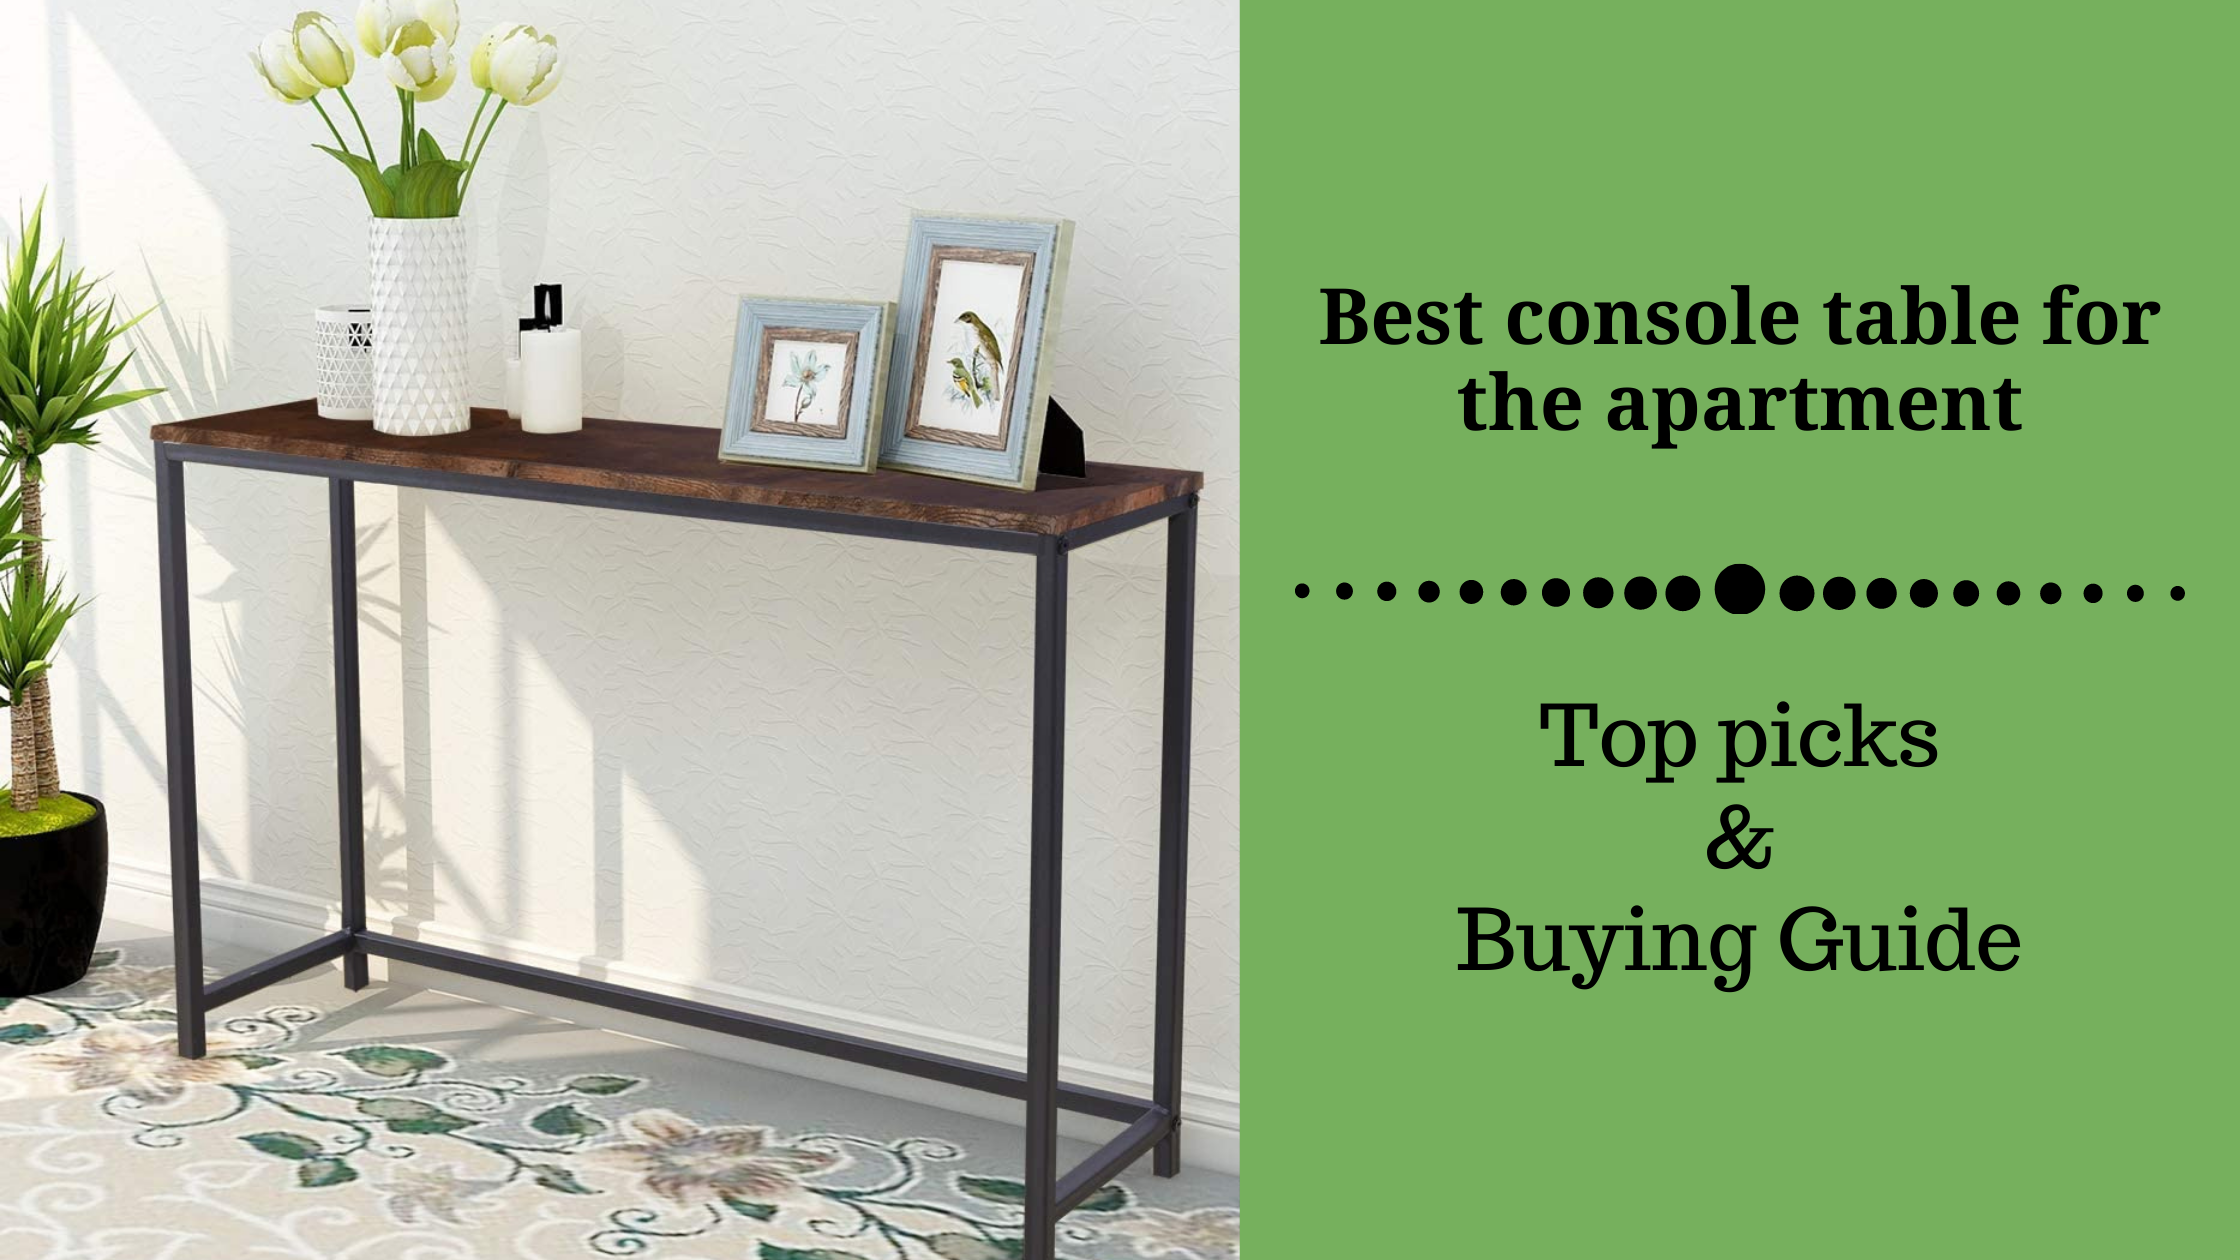 Best console table for the apartment